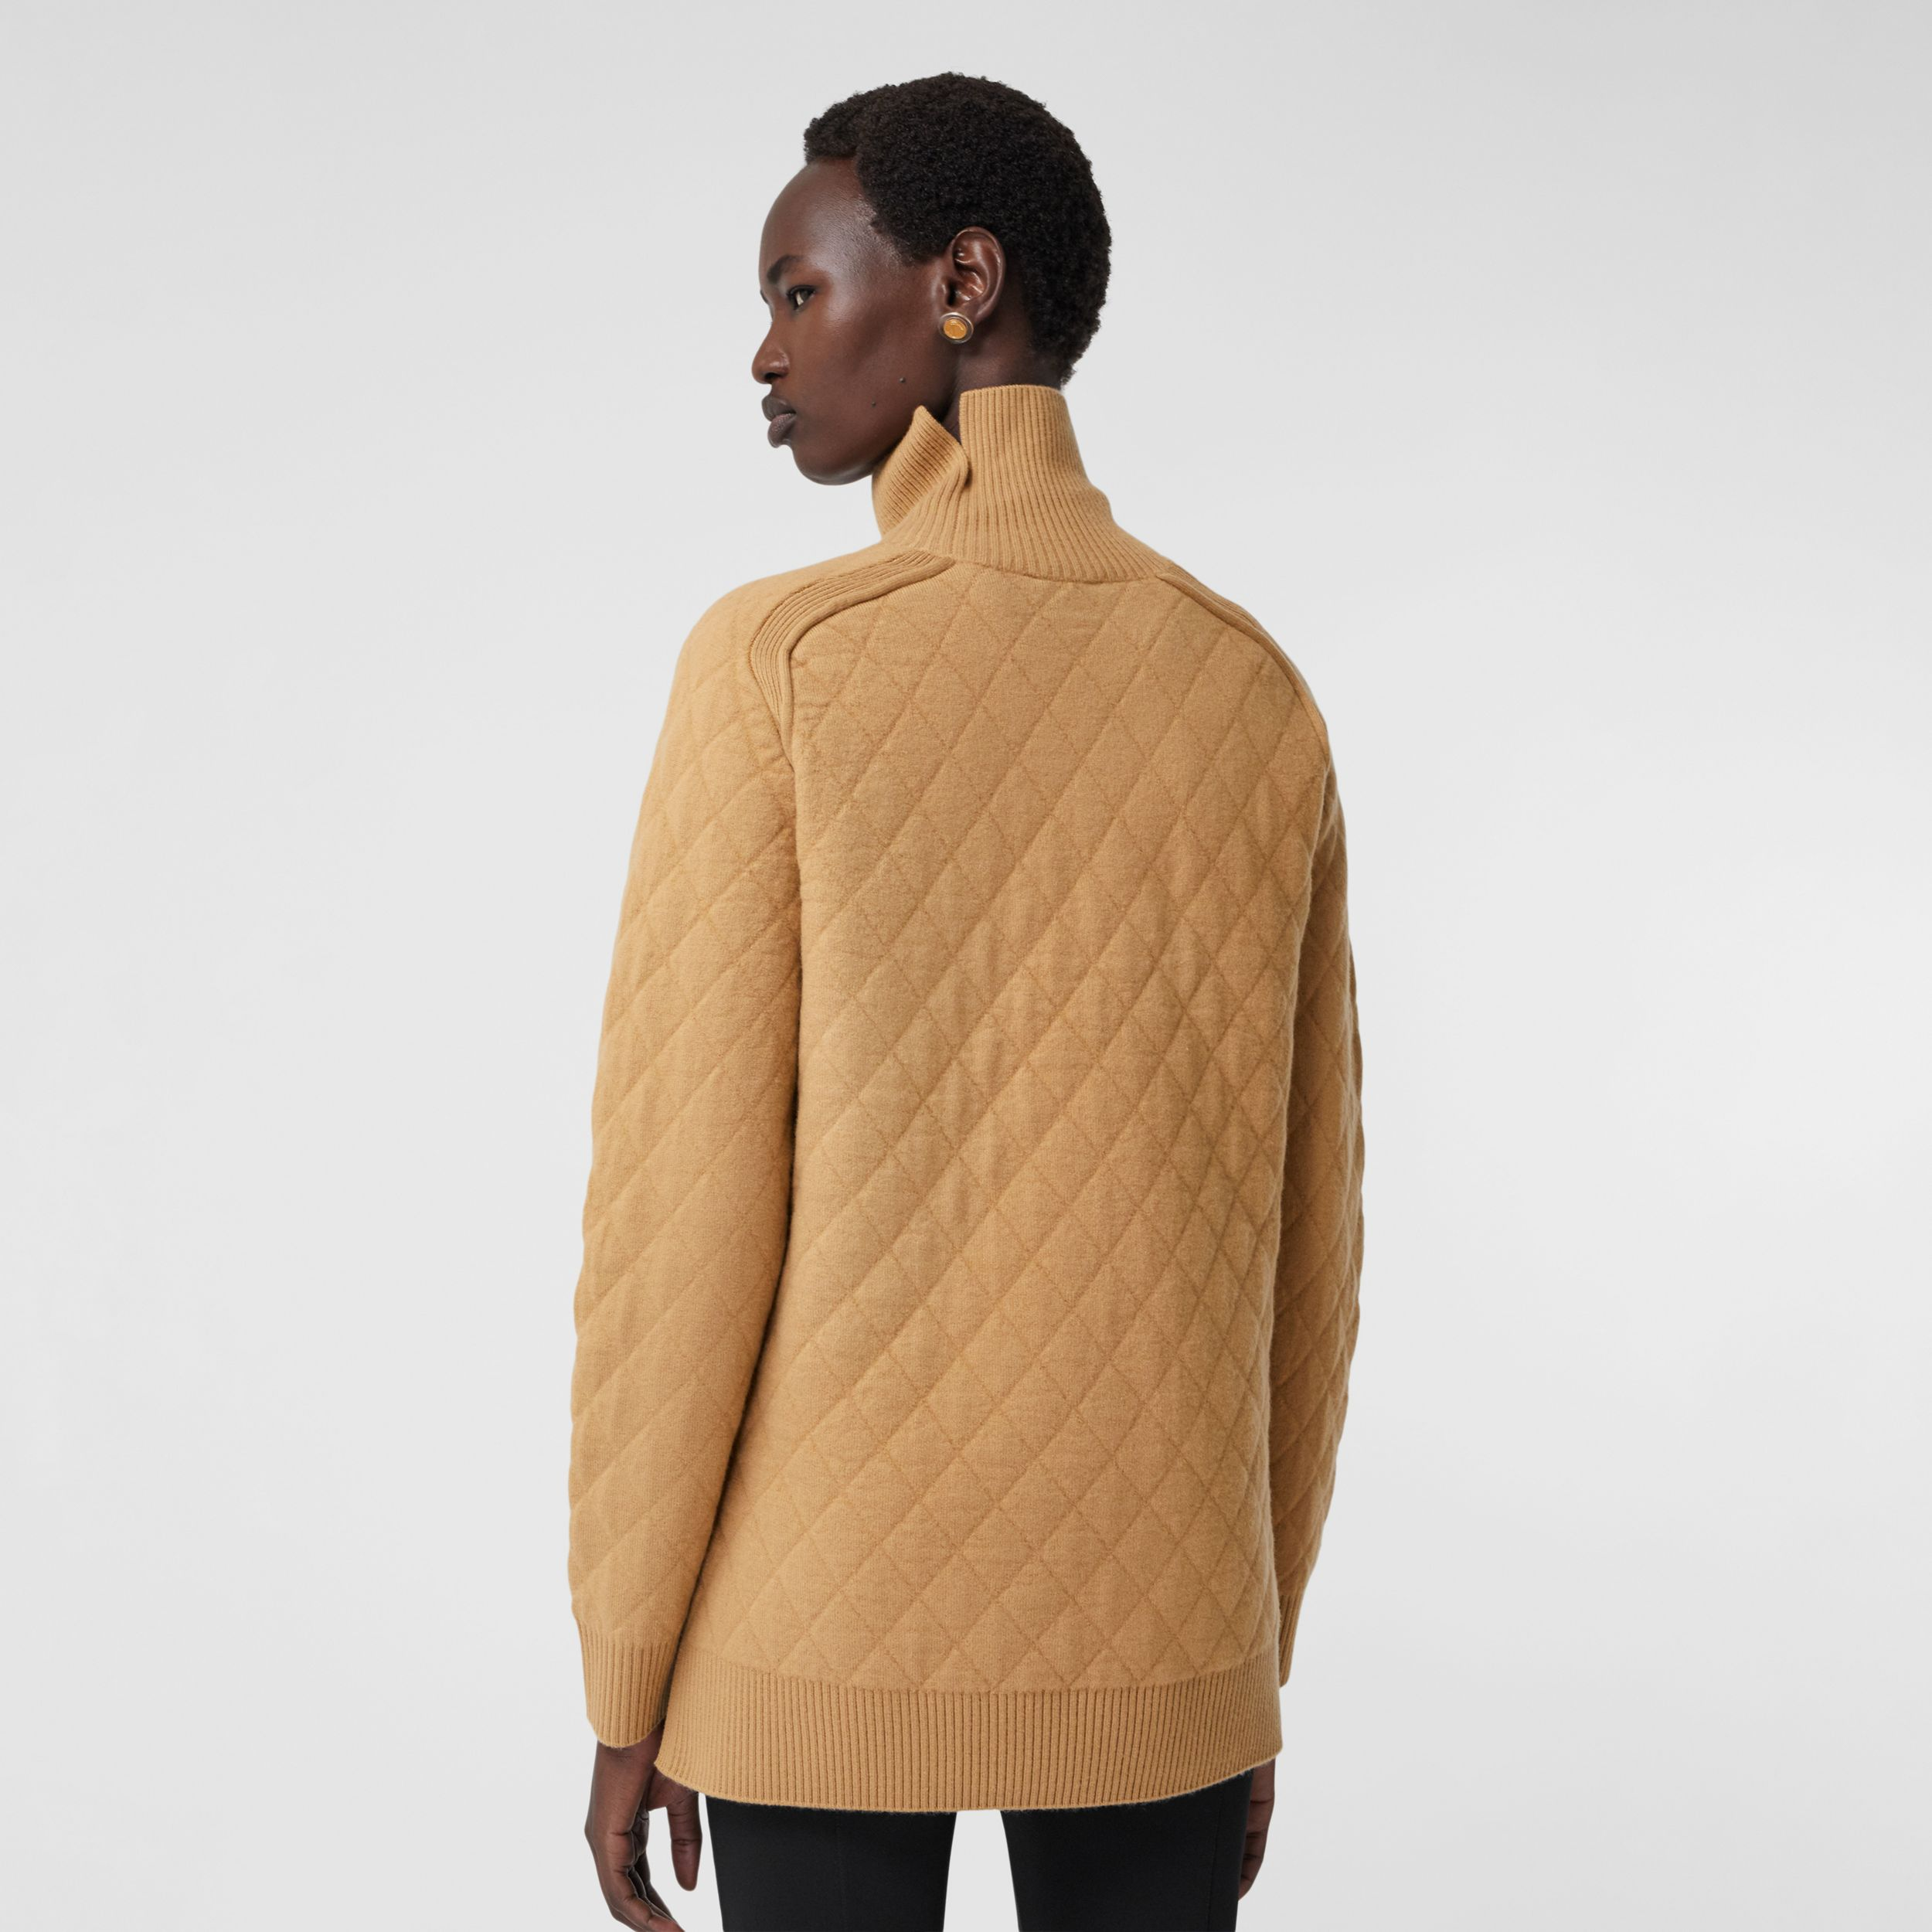 Diamond Knit Wool Funnel Neck Sweater in Camel - Women | Burberry - 3